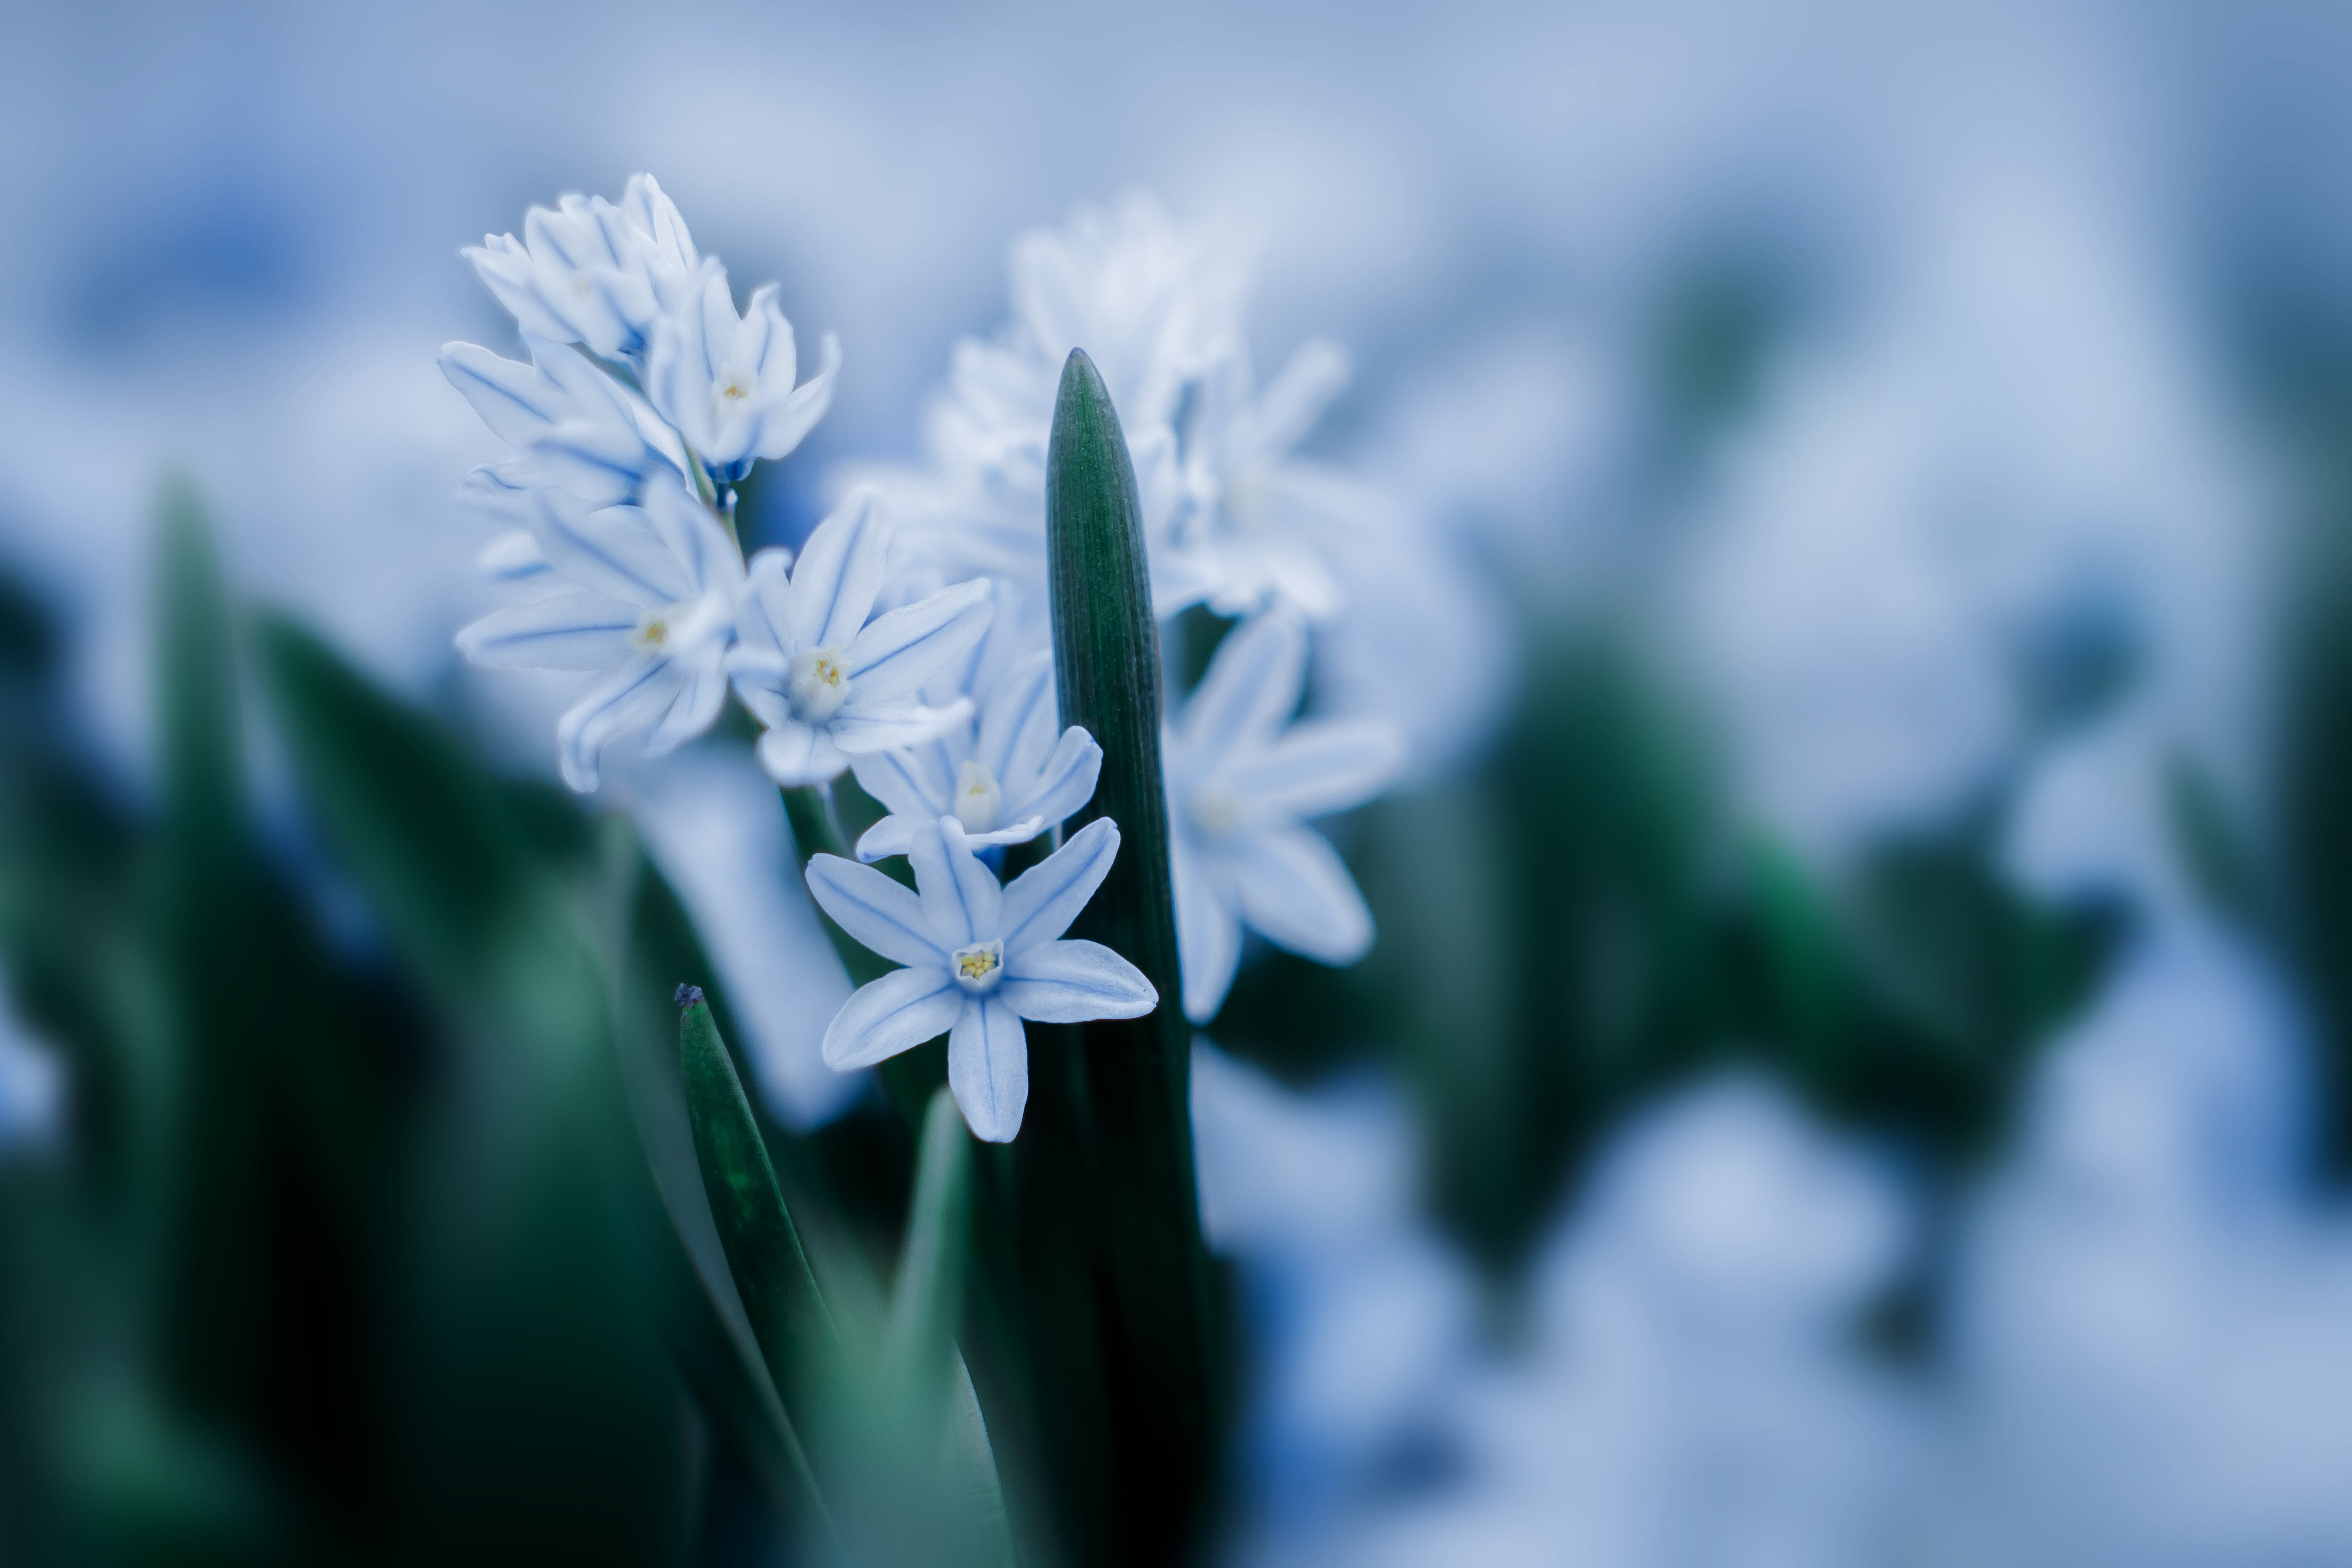 Selective Focus Photogoraphy of White Petal Flowers With Green Sword Leaf